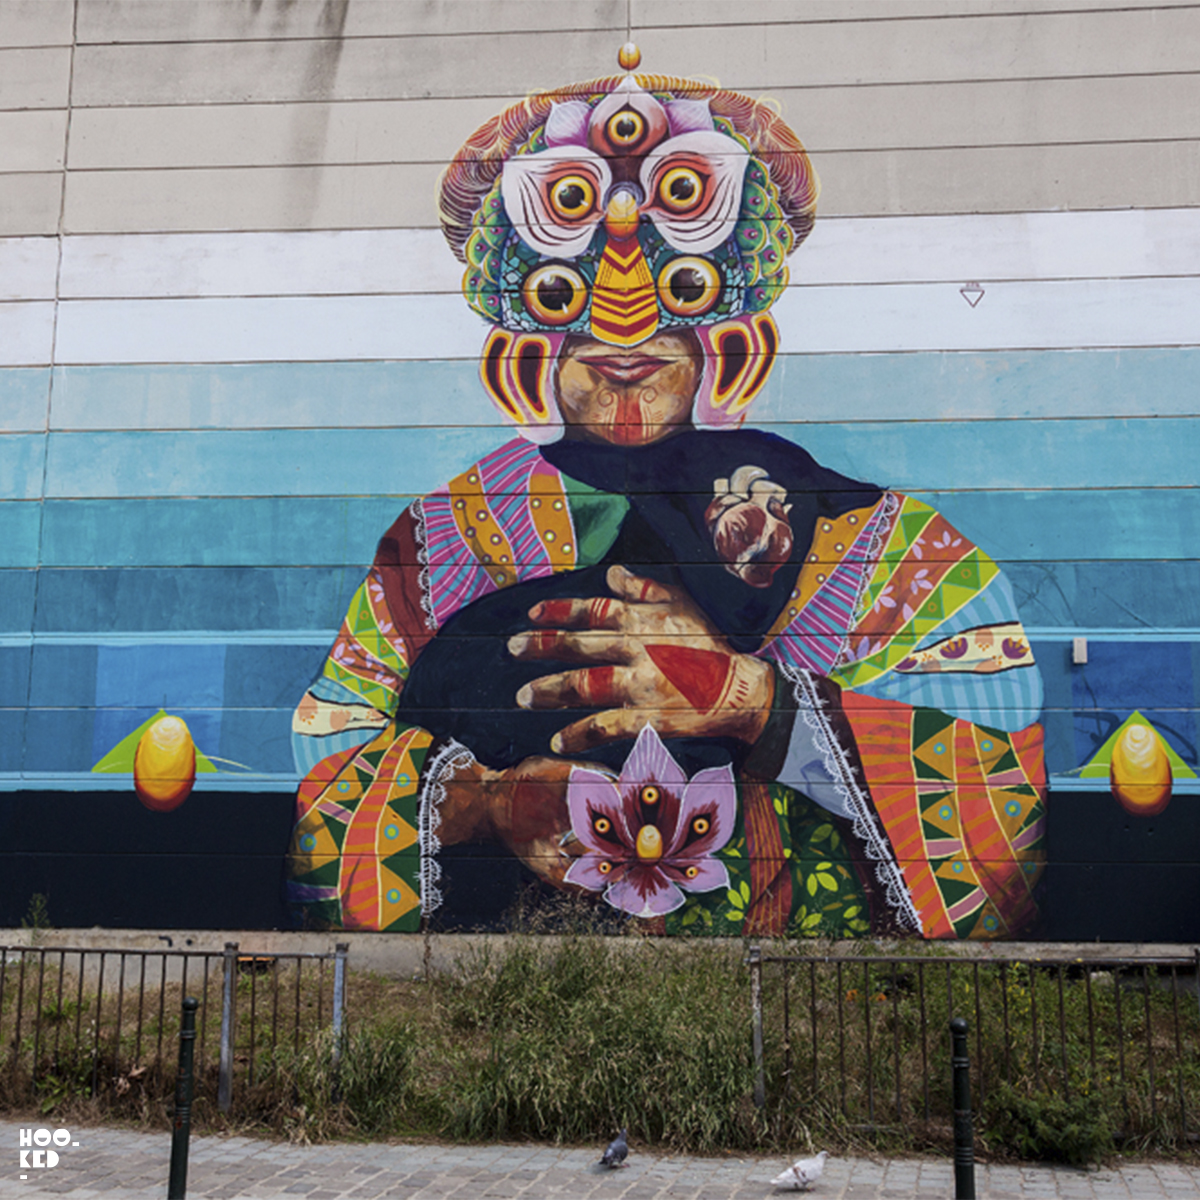 Where to find the best Brussels Street Art